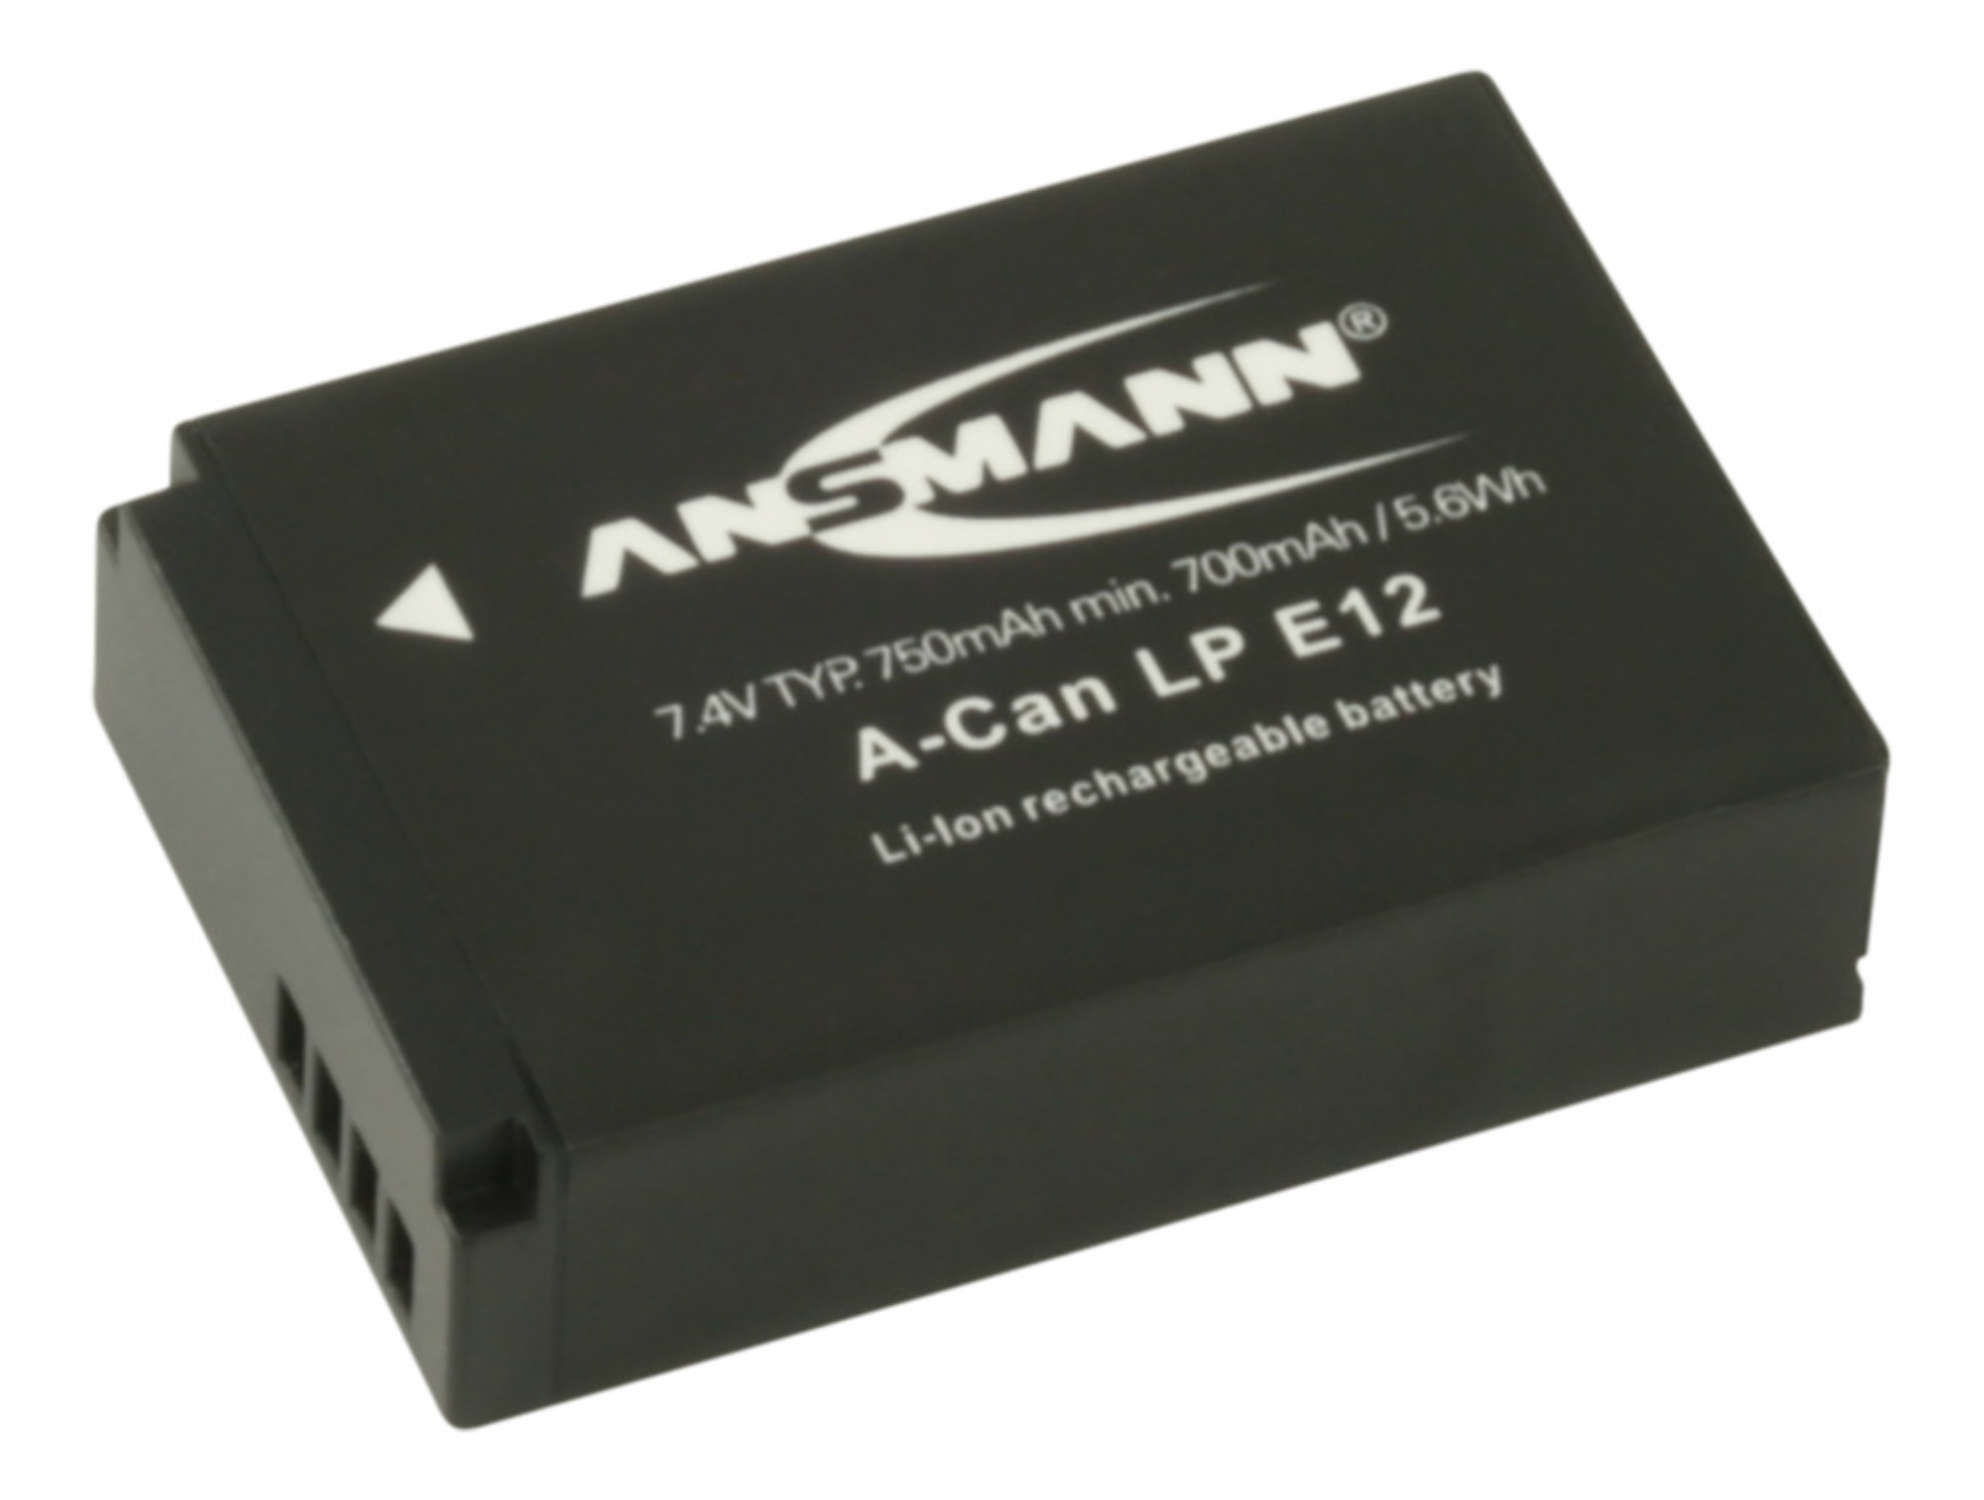 A-Can LP-E12